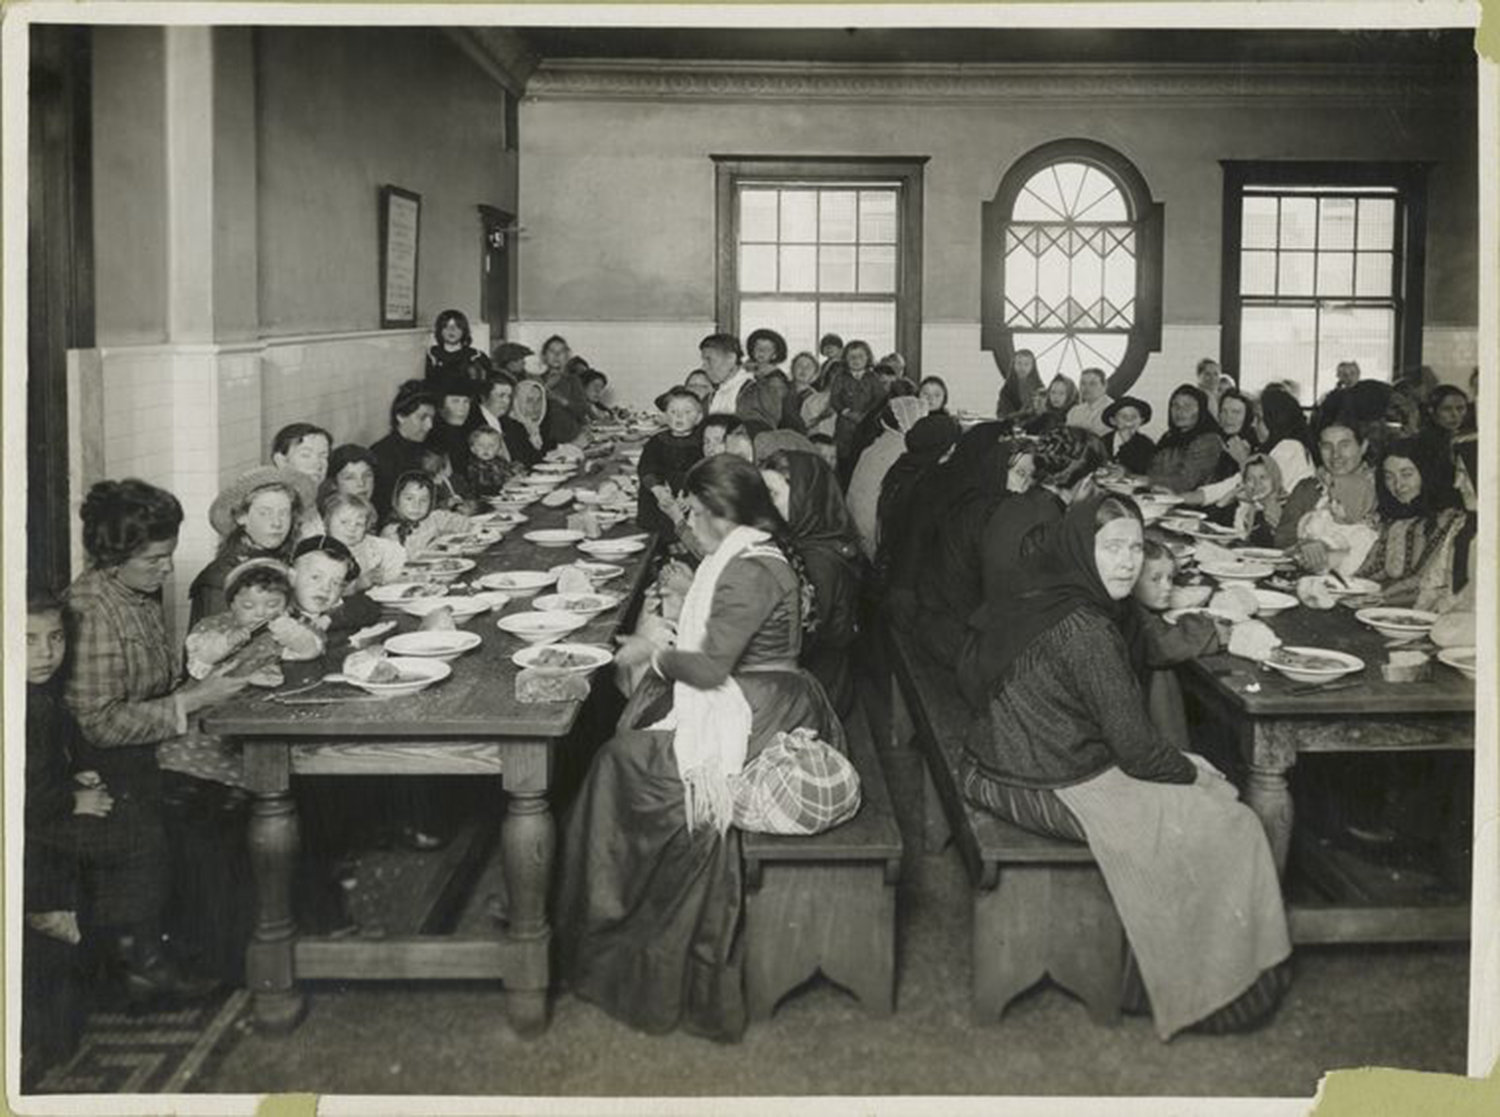 Uncle Sam, host. Immigrants being served a free meal at Ellis Island., Levick, Edwin, NYPL Digital Gallery, Public Domain Mark